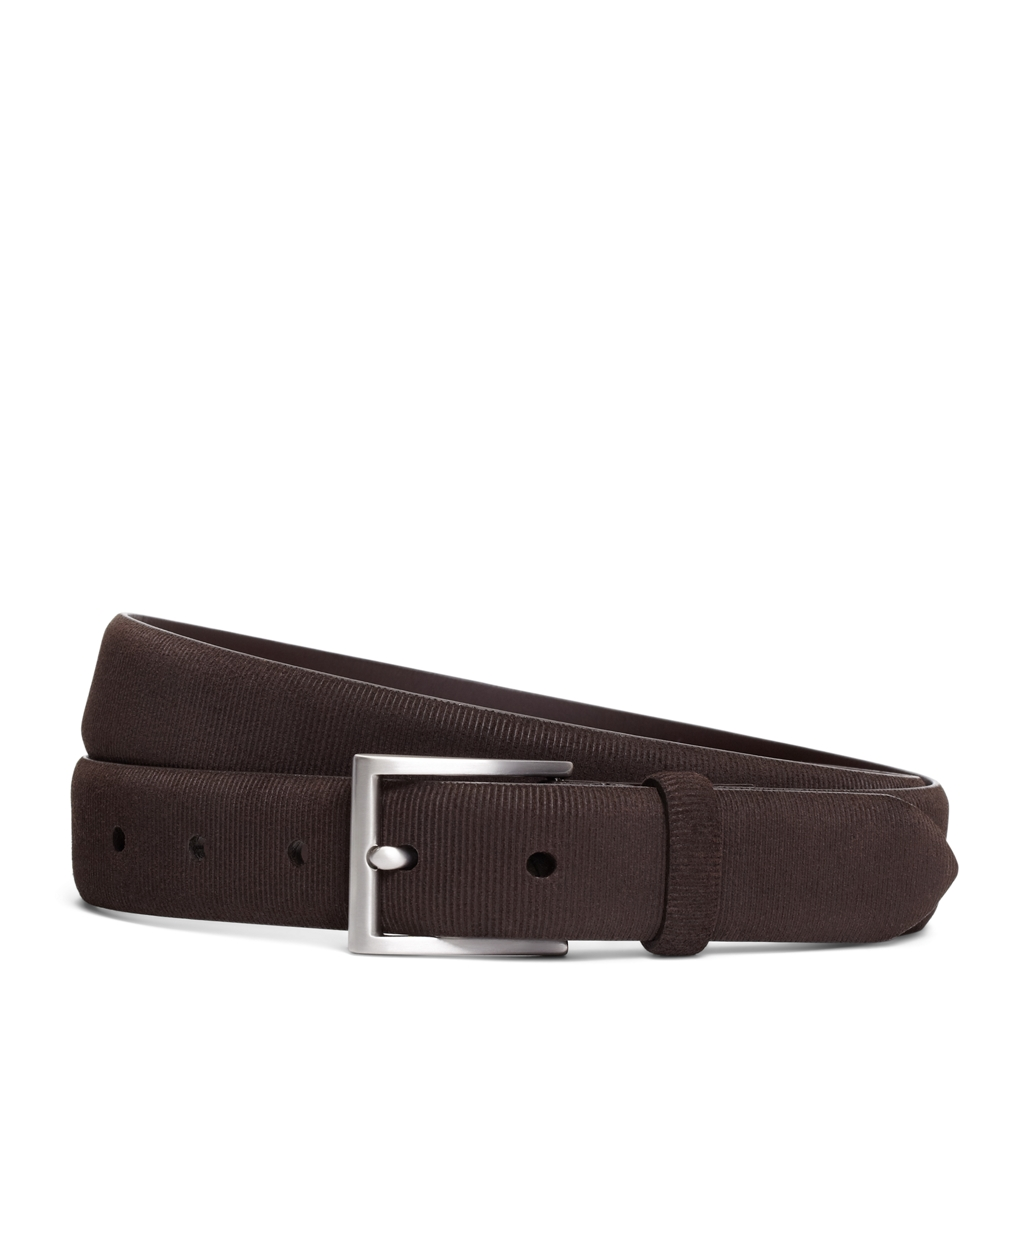 brothers micro stripe calfskin suede leather belt